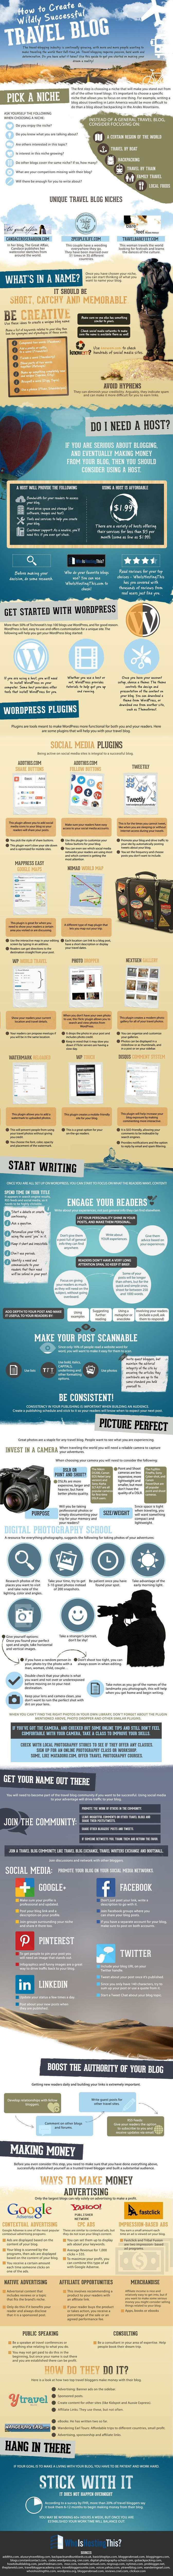 Infographic: How to Create a Wildly Successful Travel Blog